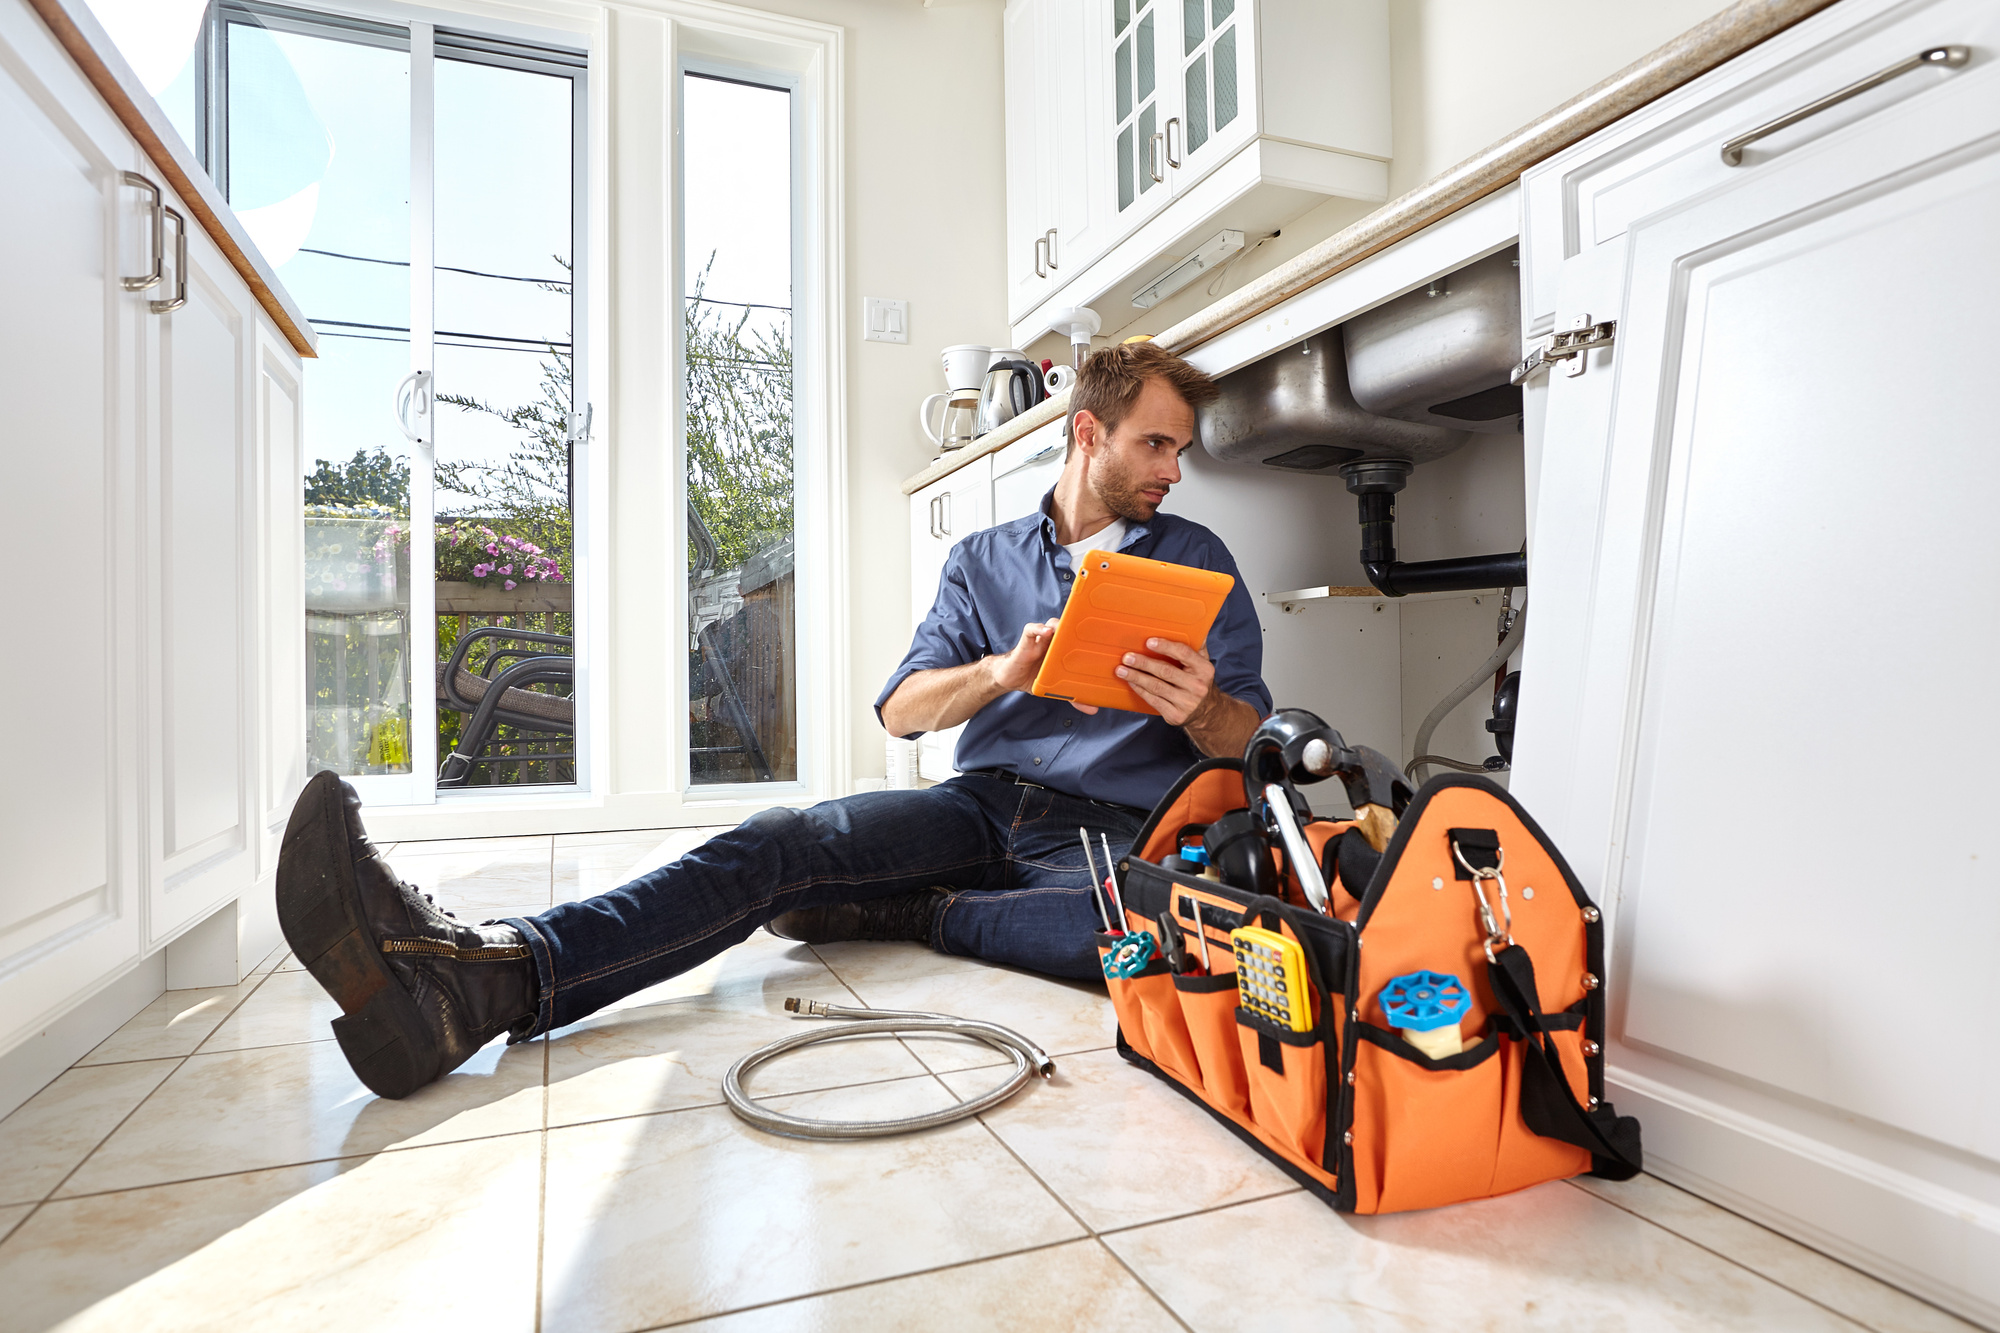 How to Become a Plumber in 5 Simple Steps